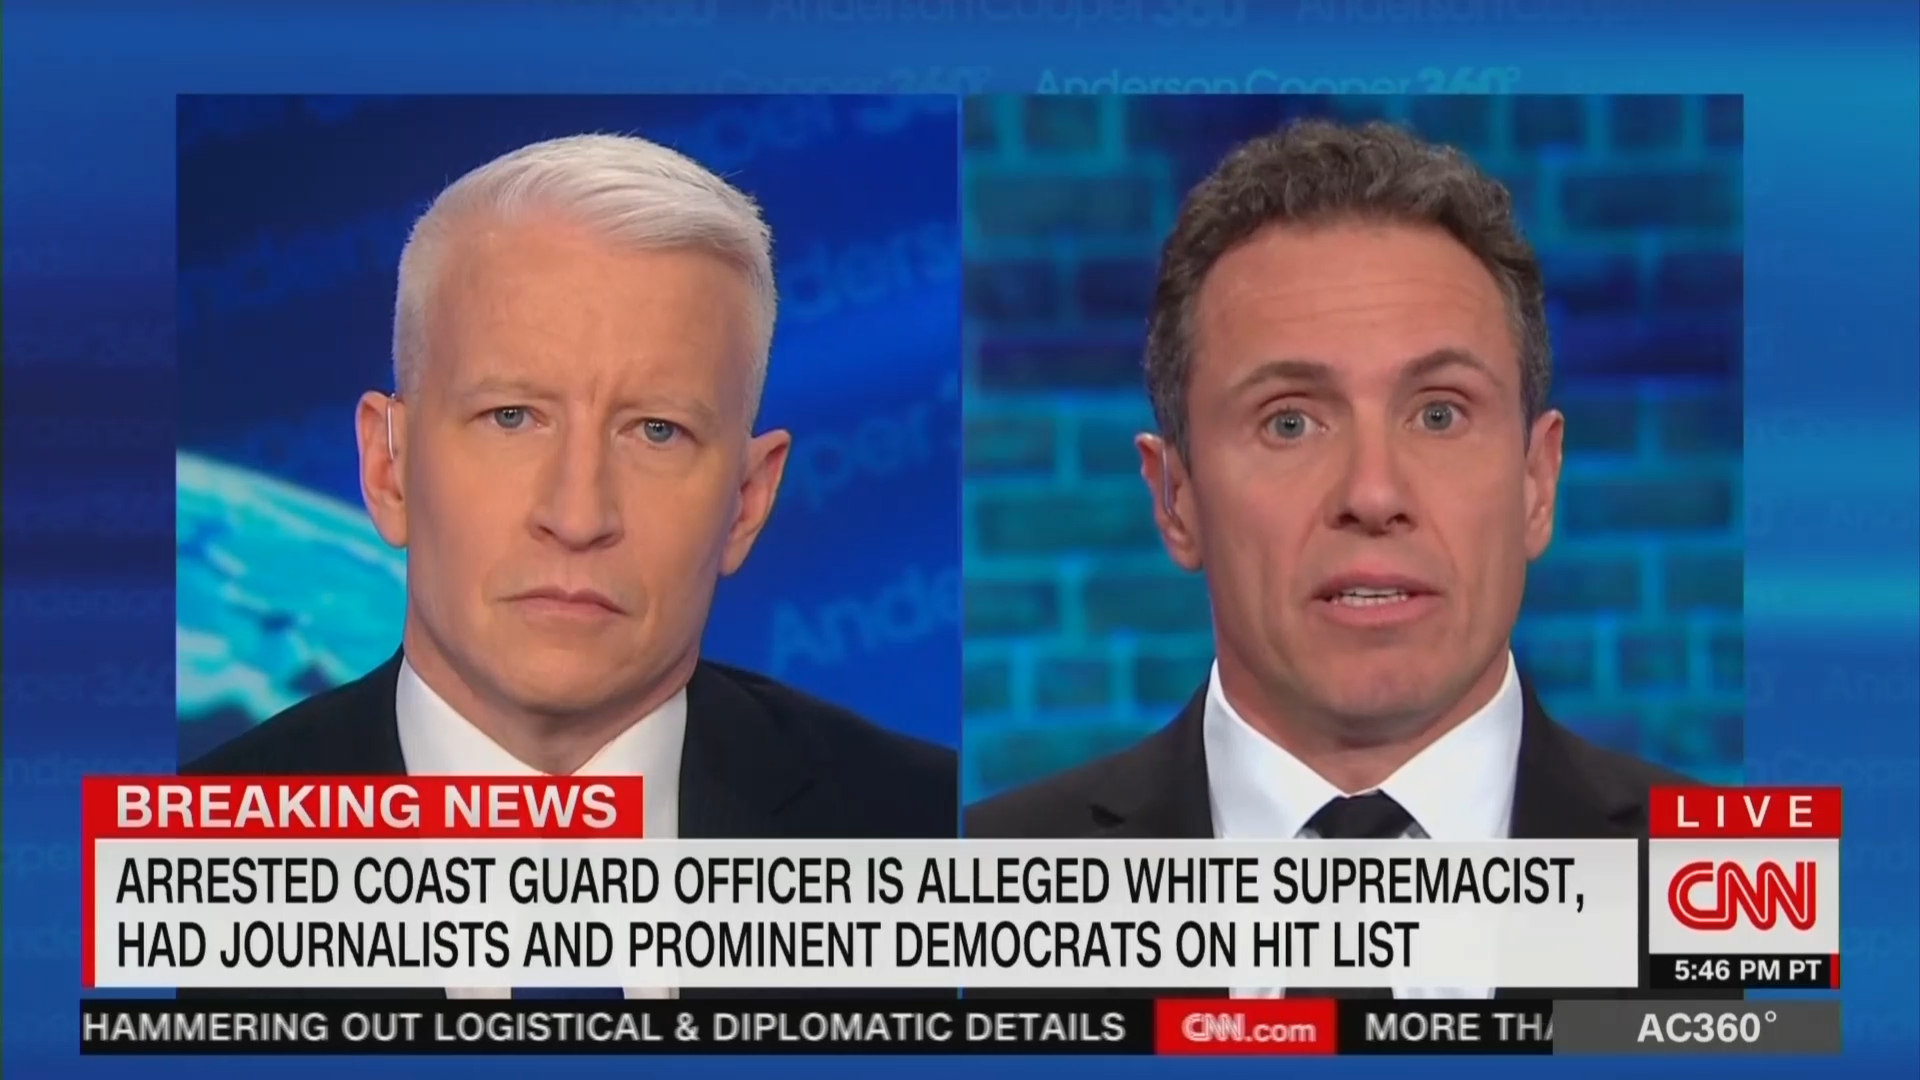 Chris Cuomo concerned with family's safety after showing up on Coast Guard officer's hit list